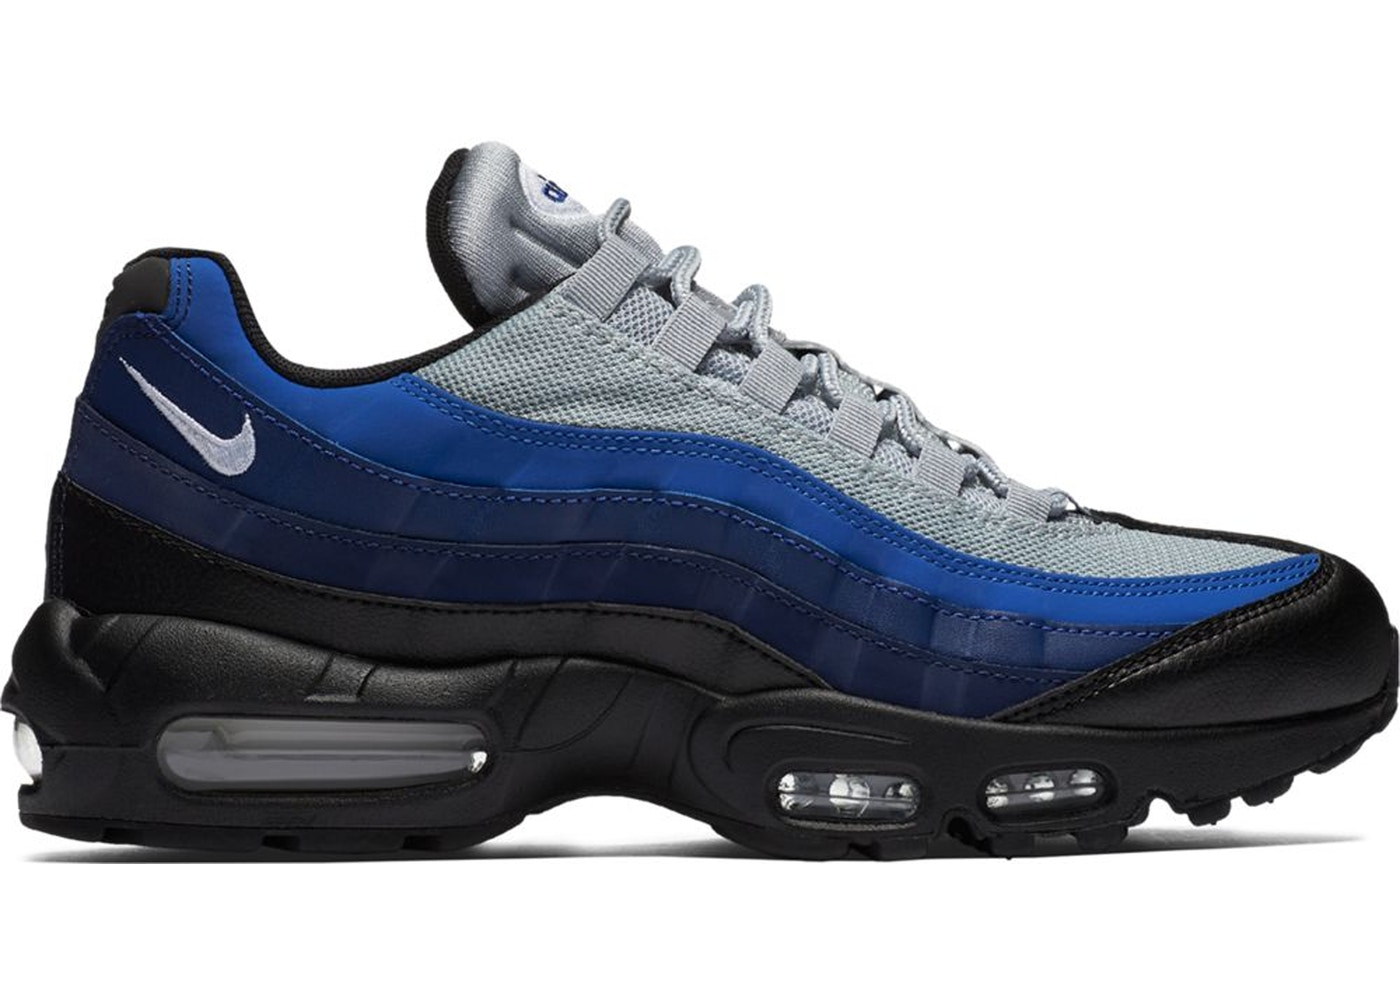 26c9af1b1a57f Buy Nike Air Max 95 Shoes & Deadstock Sneakers